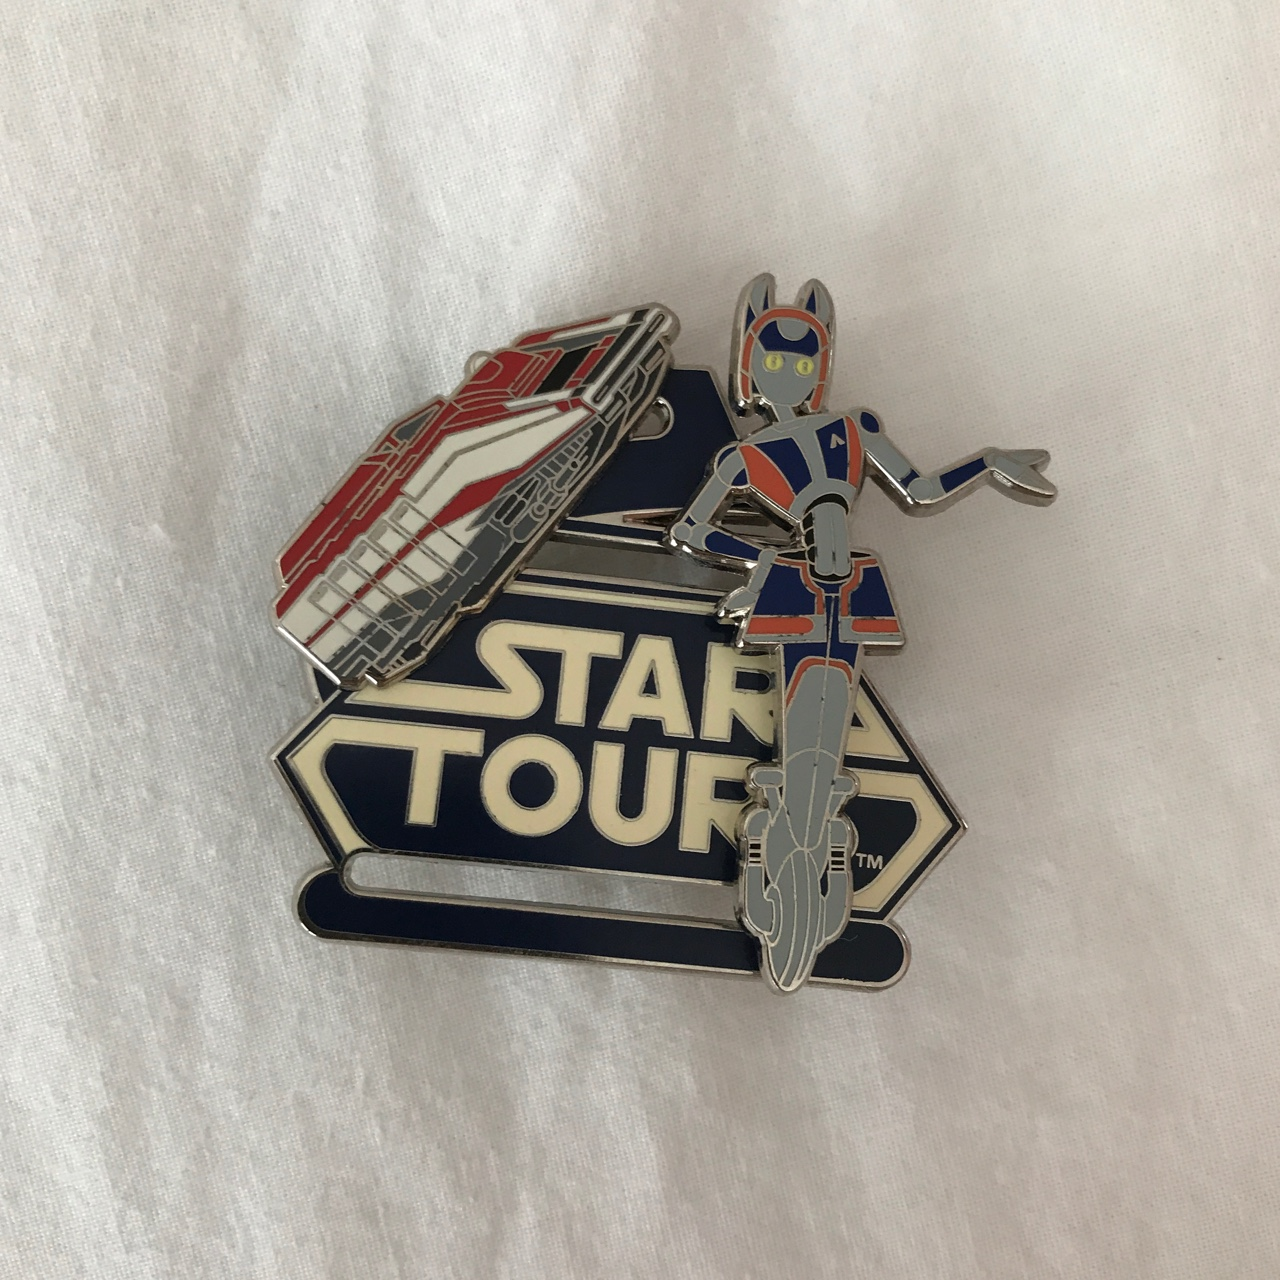 STAR TOURS ENAMEL PIN FROM DISNEY! would look super